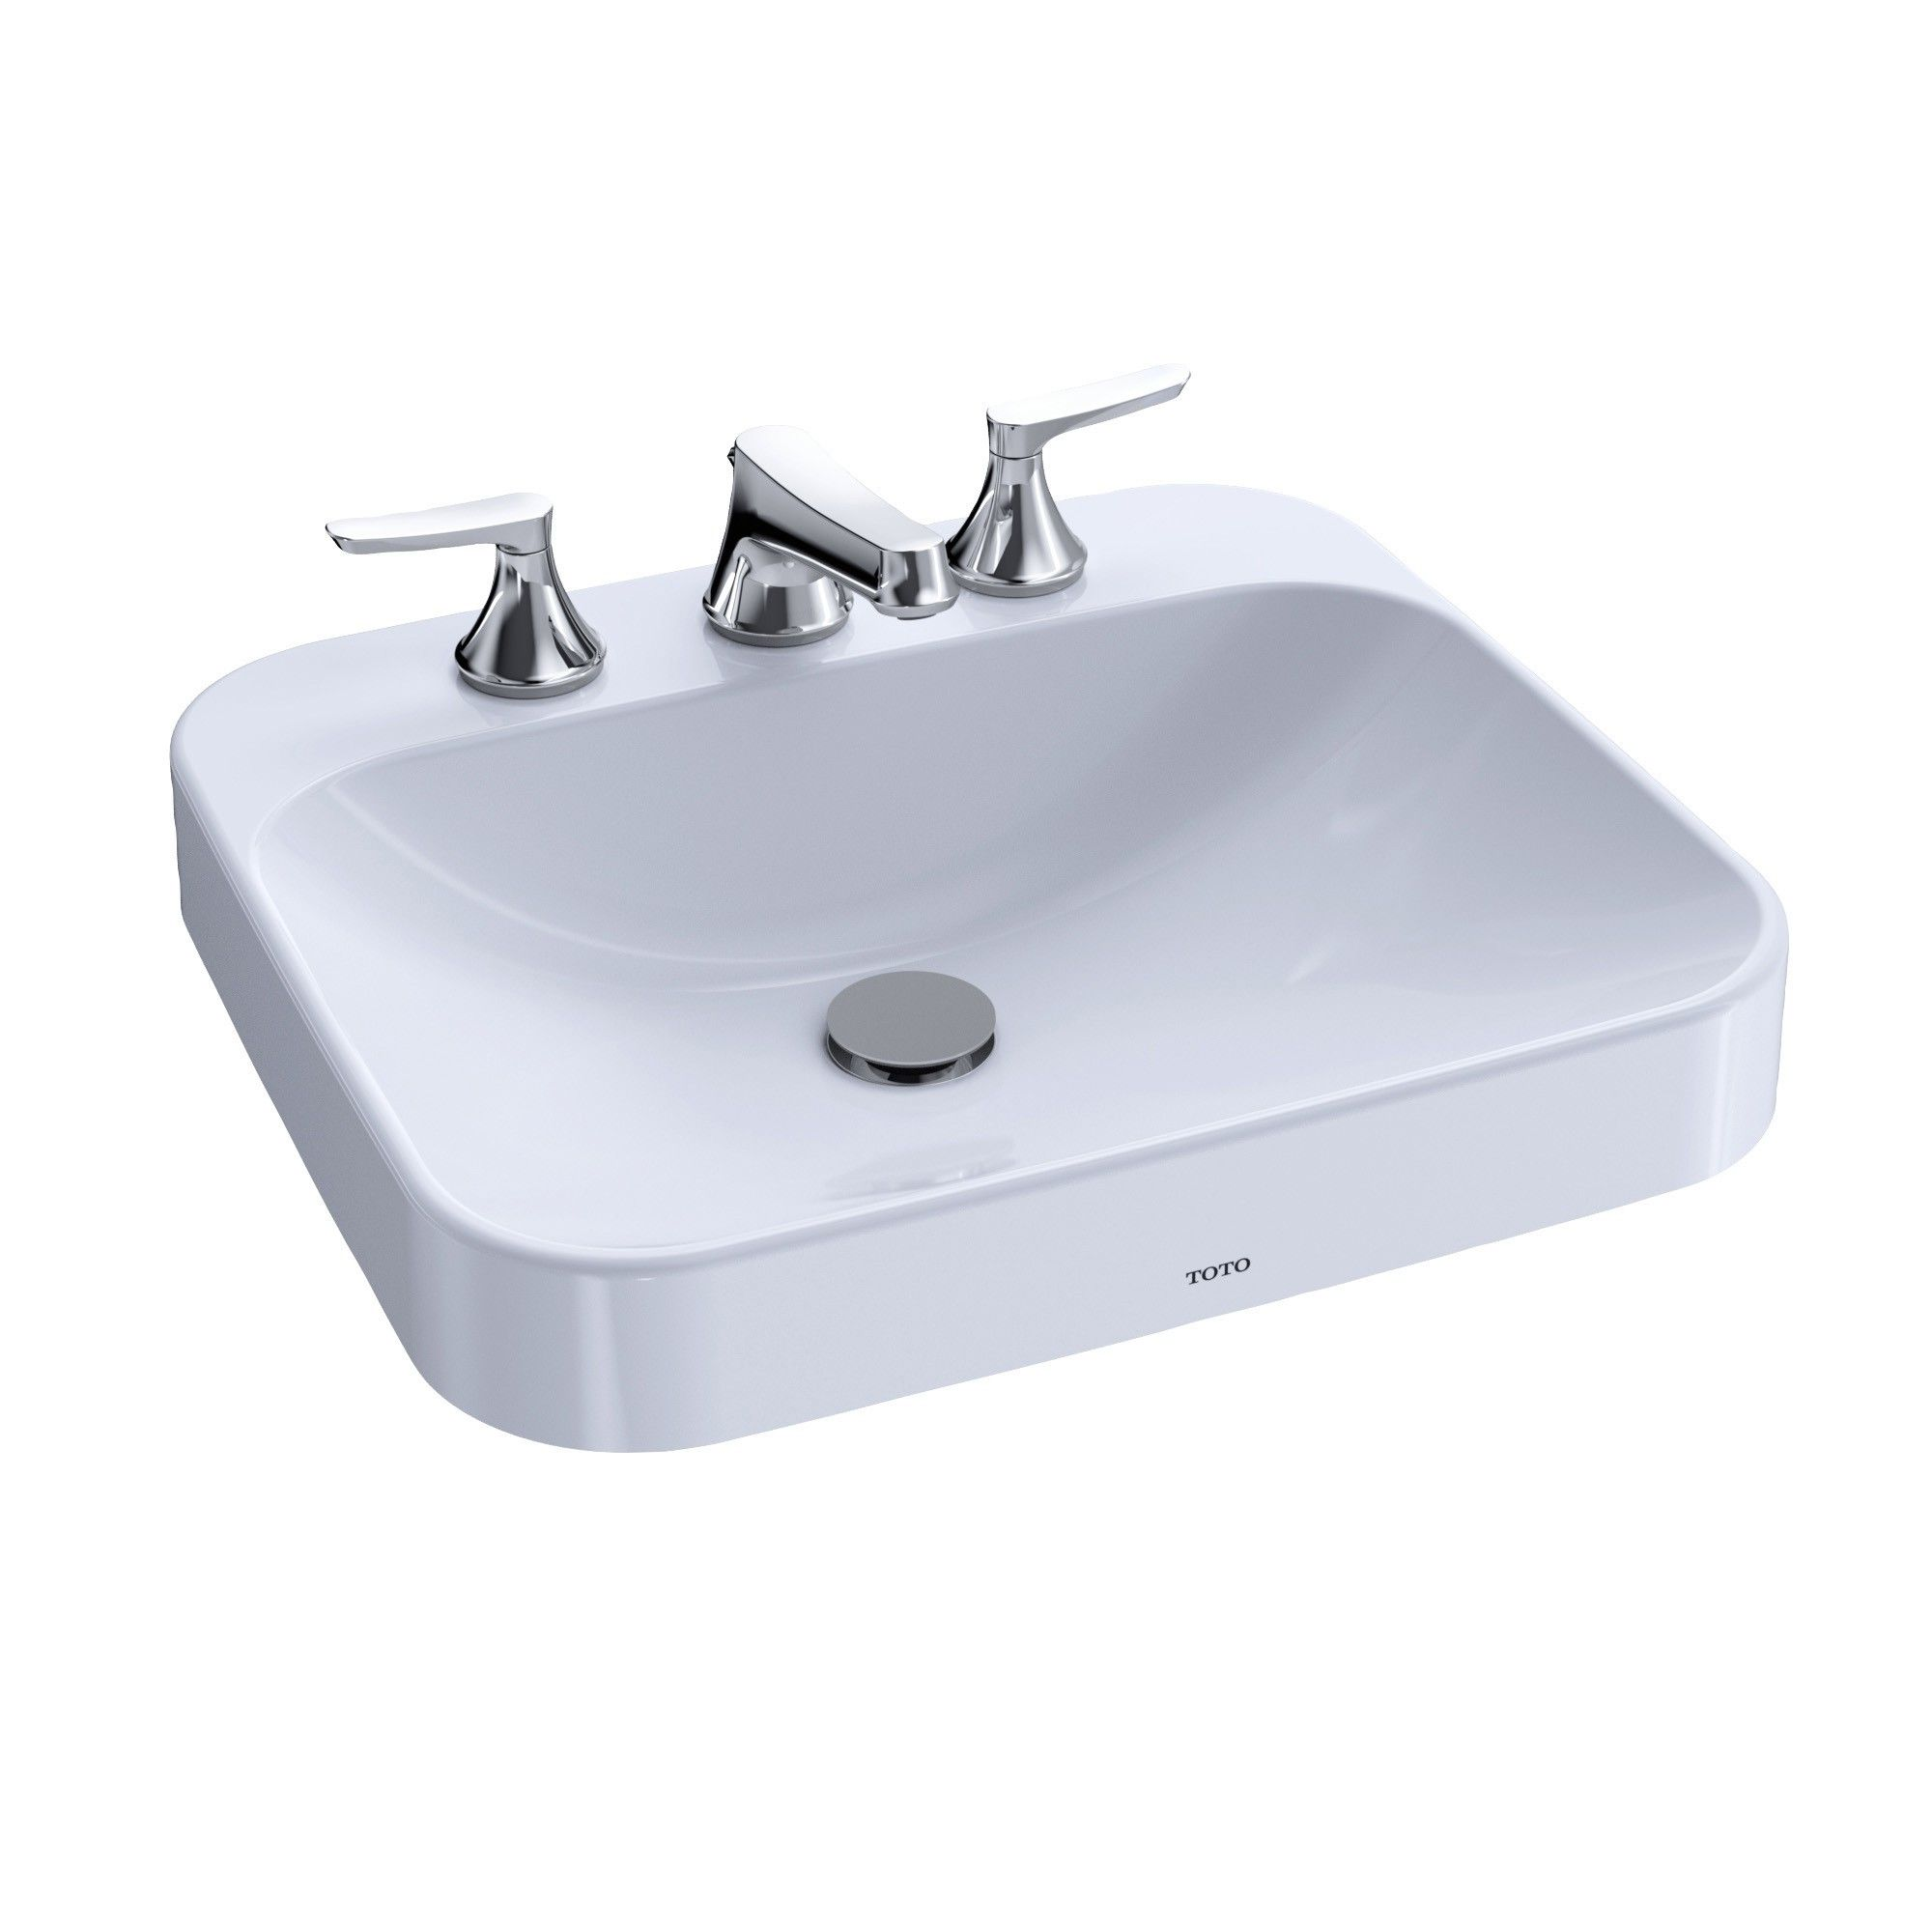 Toto Arvina Rectangular 20 Vessel Bathroom Sink With Cefiontect For 4 Inch Center Faucets Cotton White Lt415g 4 0 Drop In Bathroom Sinks Sink Bathroom Sink